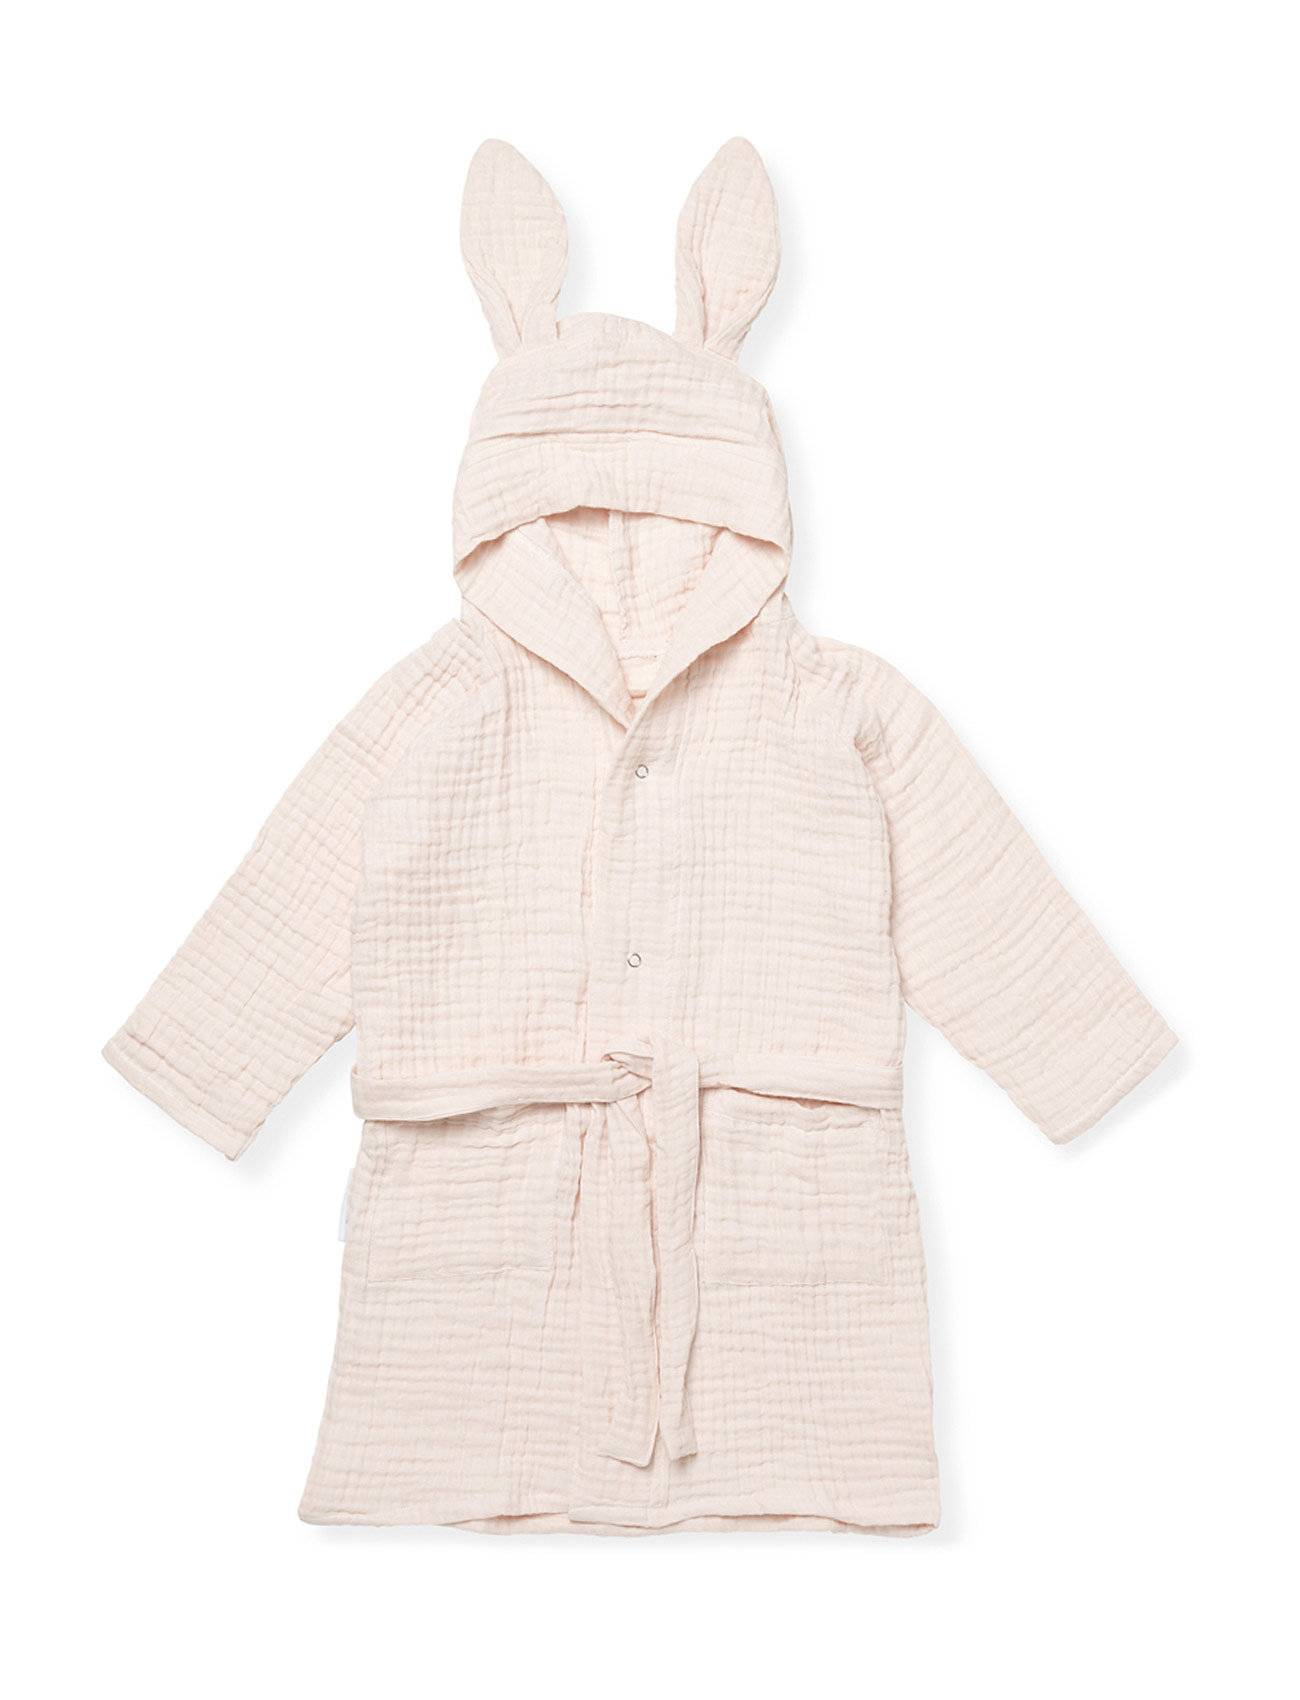 Liewood Dana Muslin Bath Robe Rabbit